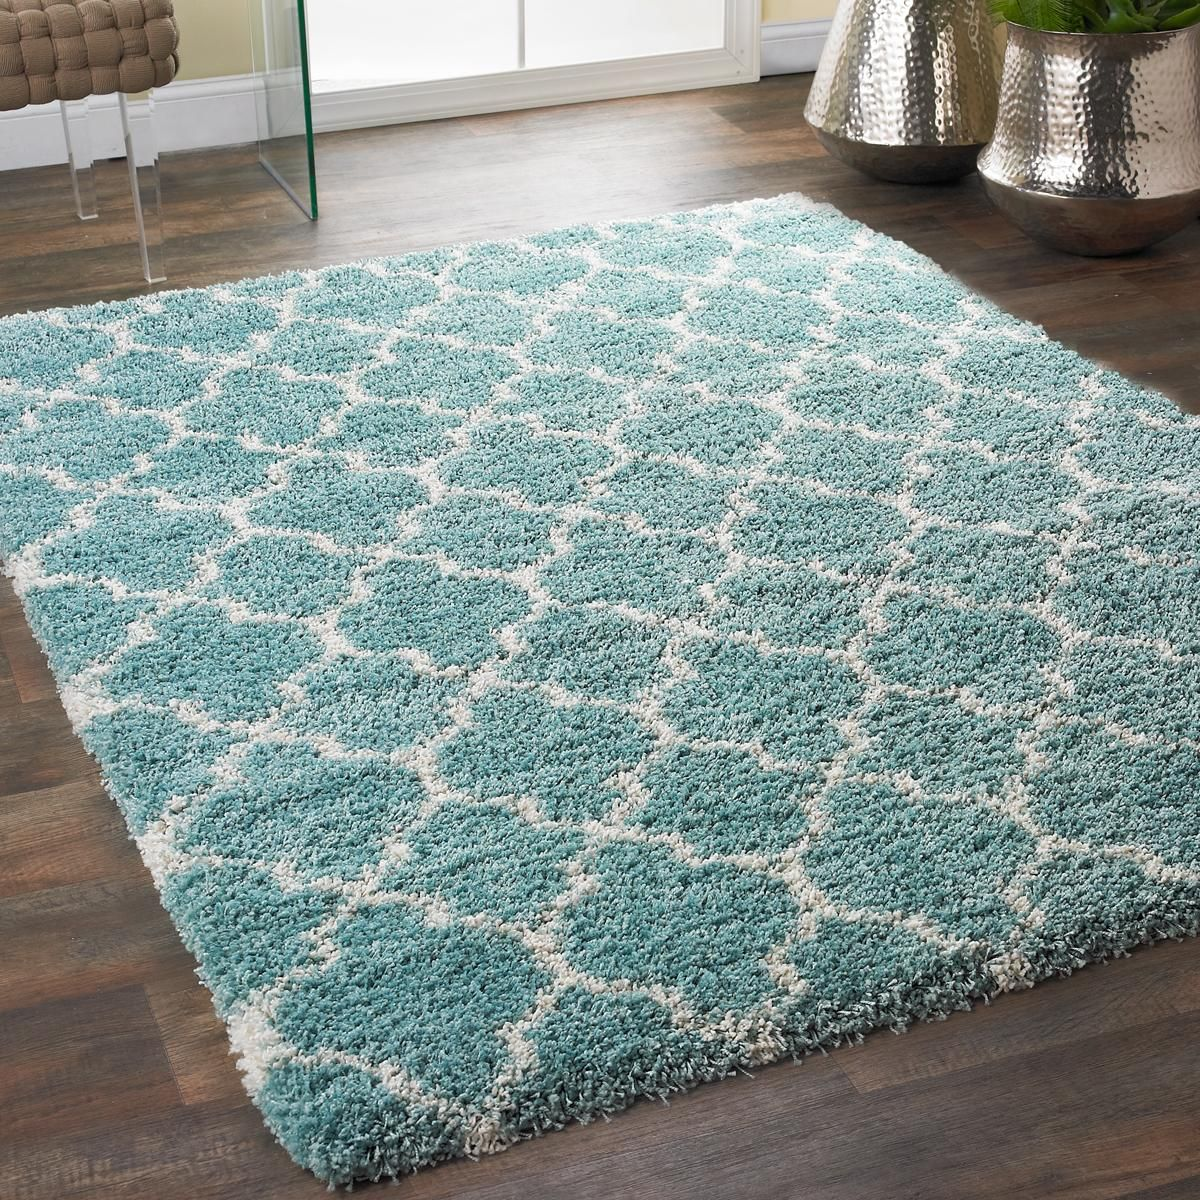 Lofty Trellis Plush Area Rug In 2019 Turquoise Teal